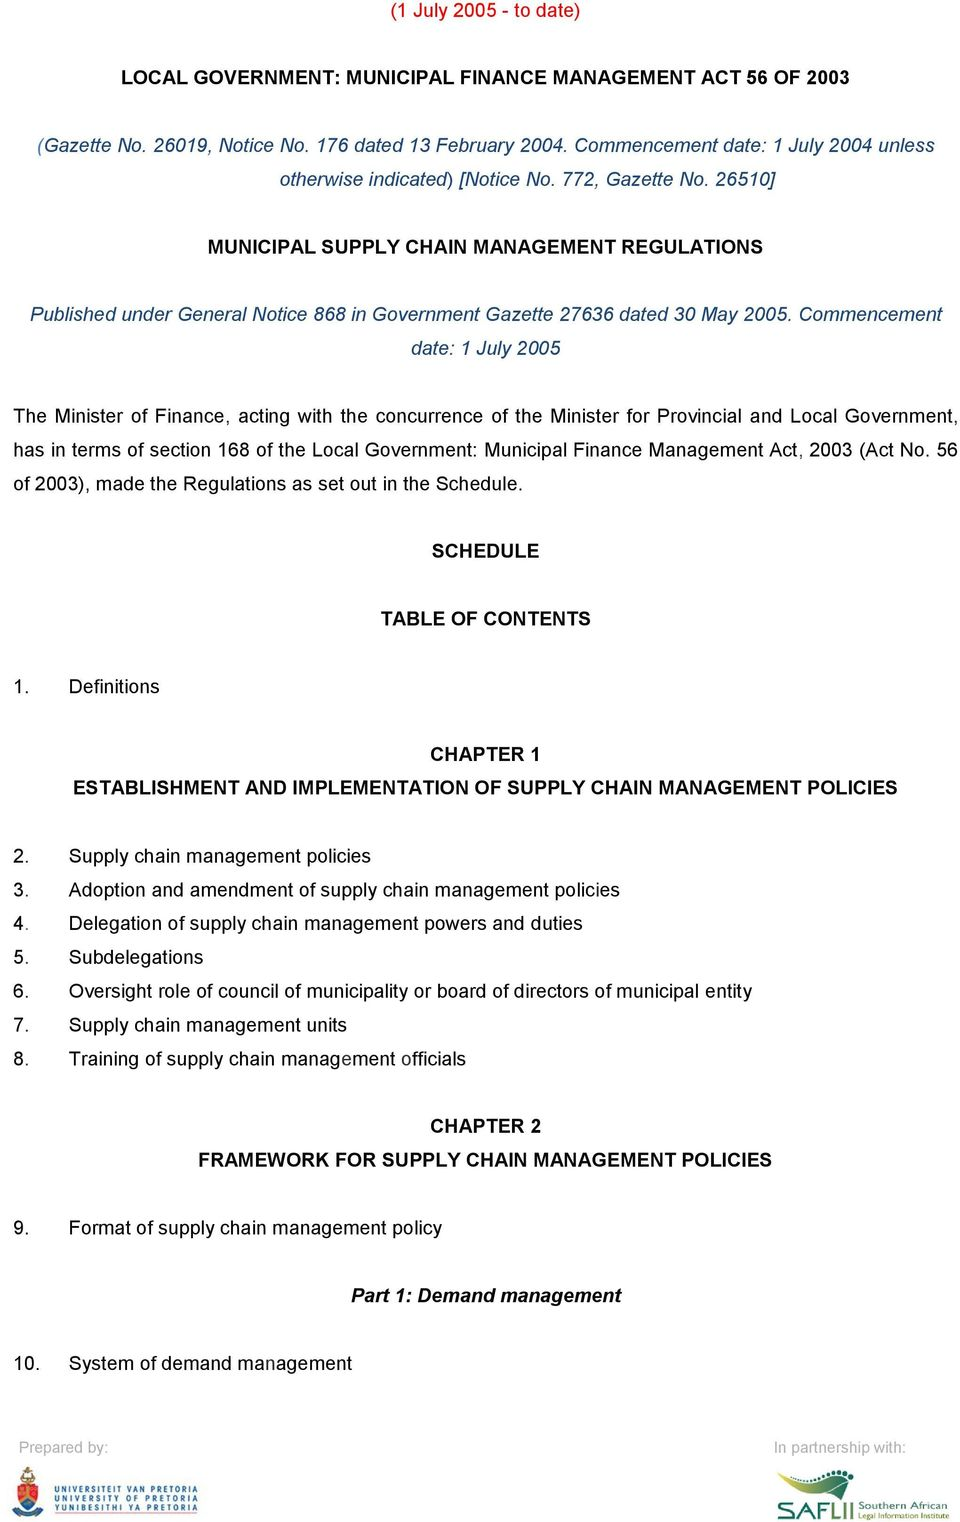 26510] MUNICIPAL SUPPLY CHAIN MANAGEMENT REGULATIONS Published under General Notice 868 in Government Gazette 27636 dated 30 May 2005.